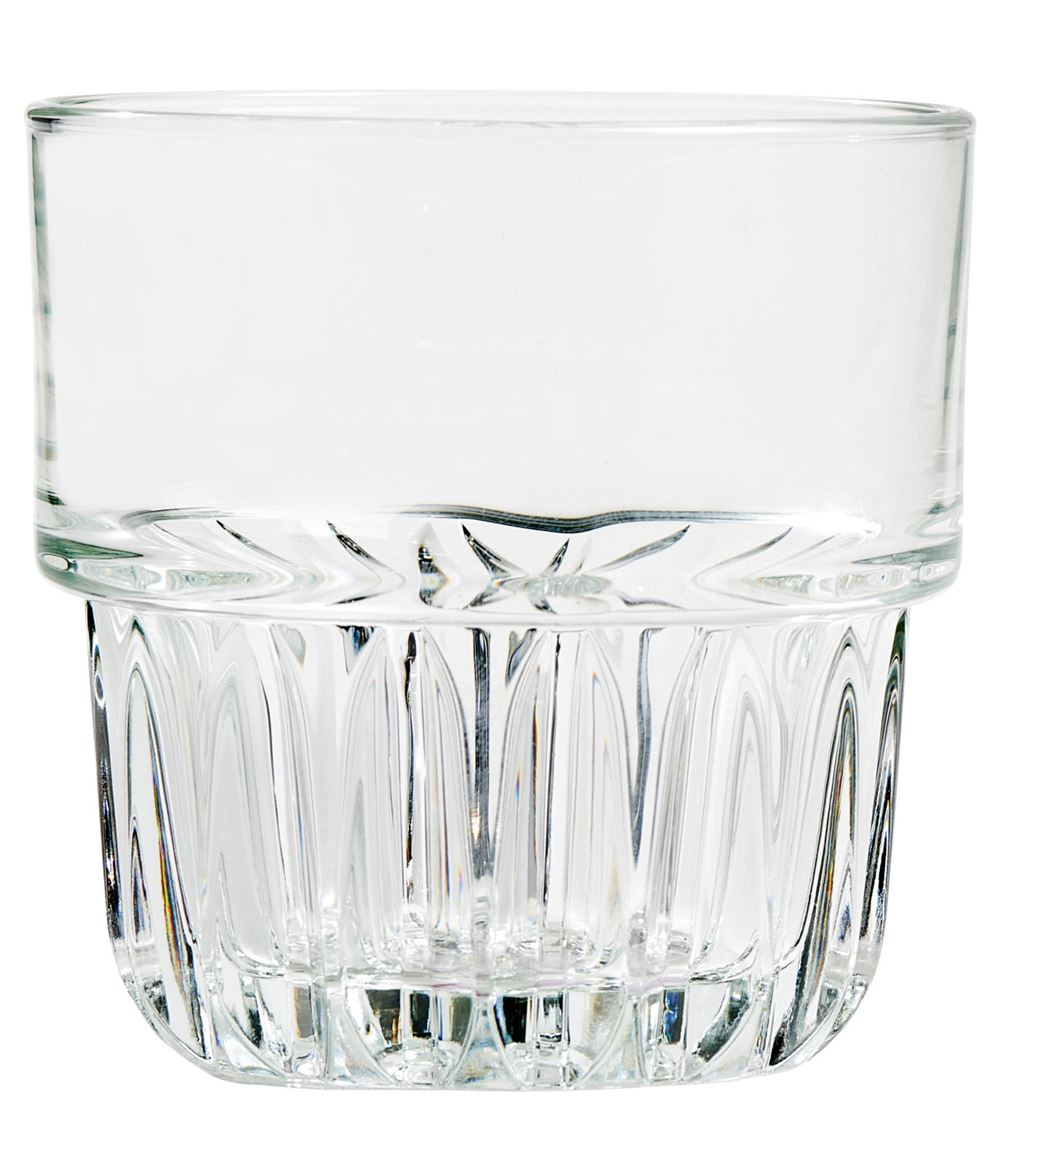 EVEREST Rocks verre transparent H 9,5 cm; Ø 9,2 cm_everest-rocks-verre-transparent-h-9,5-cm;-ø-9,2-cm